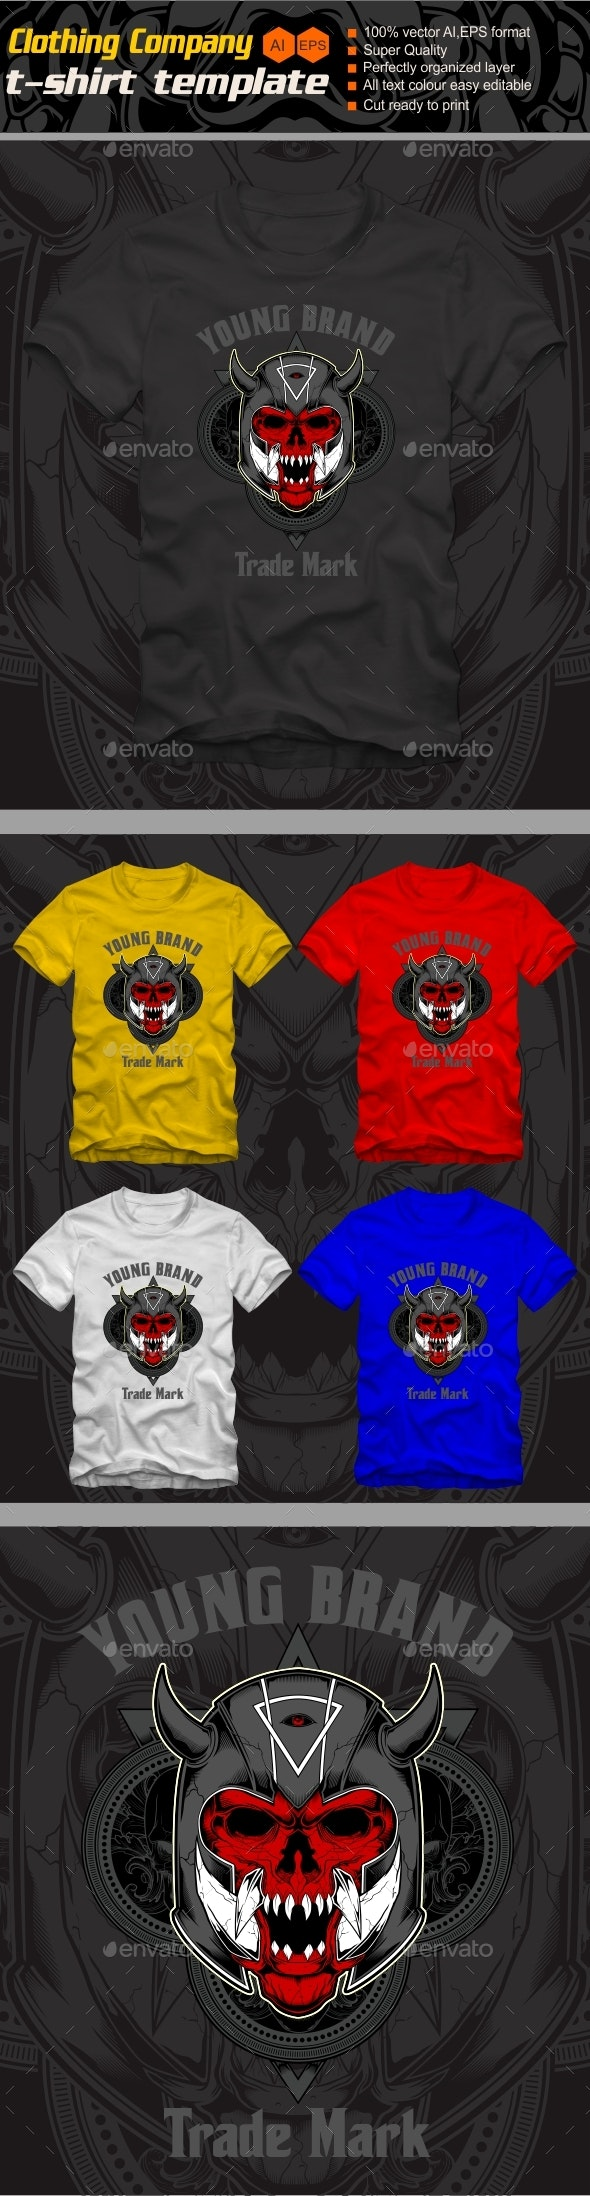 demon wearing helmet gladiator t shirt - Grunge Designs